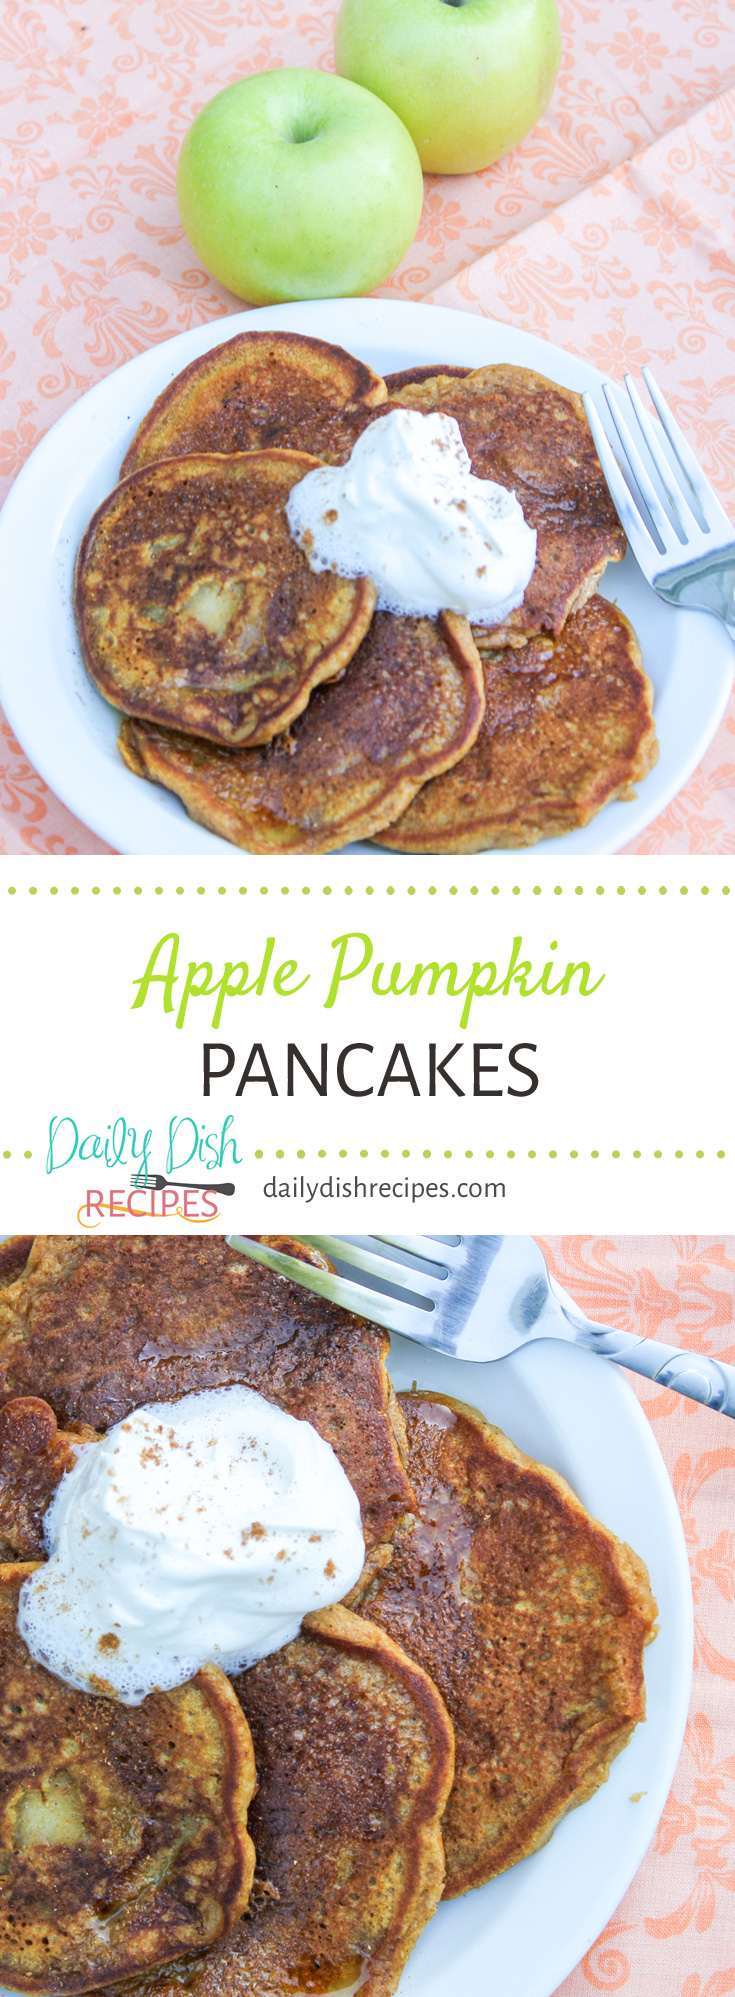 Autumn Pancakes that you can enjoy anytime! These Apple Pumpkin Pancakes taste like Fall in each bite, boast loads of apple and pumpkin flavor and are very easy to make!